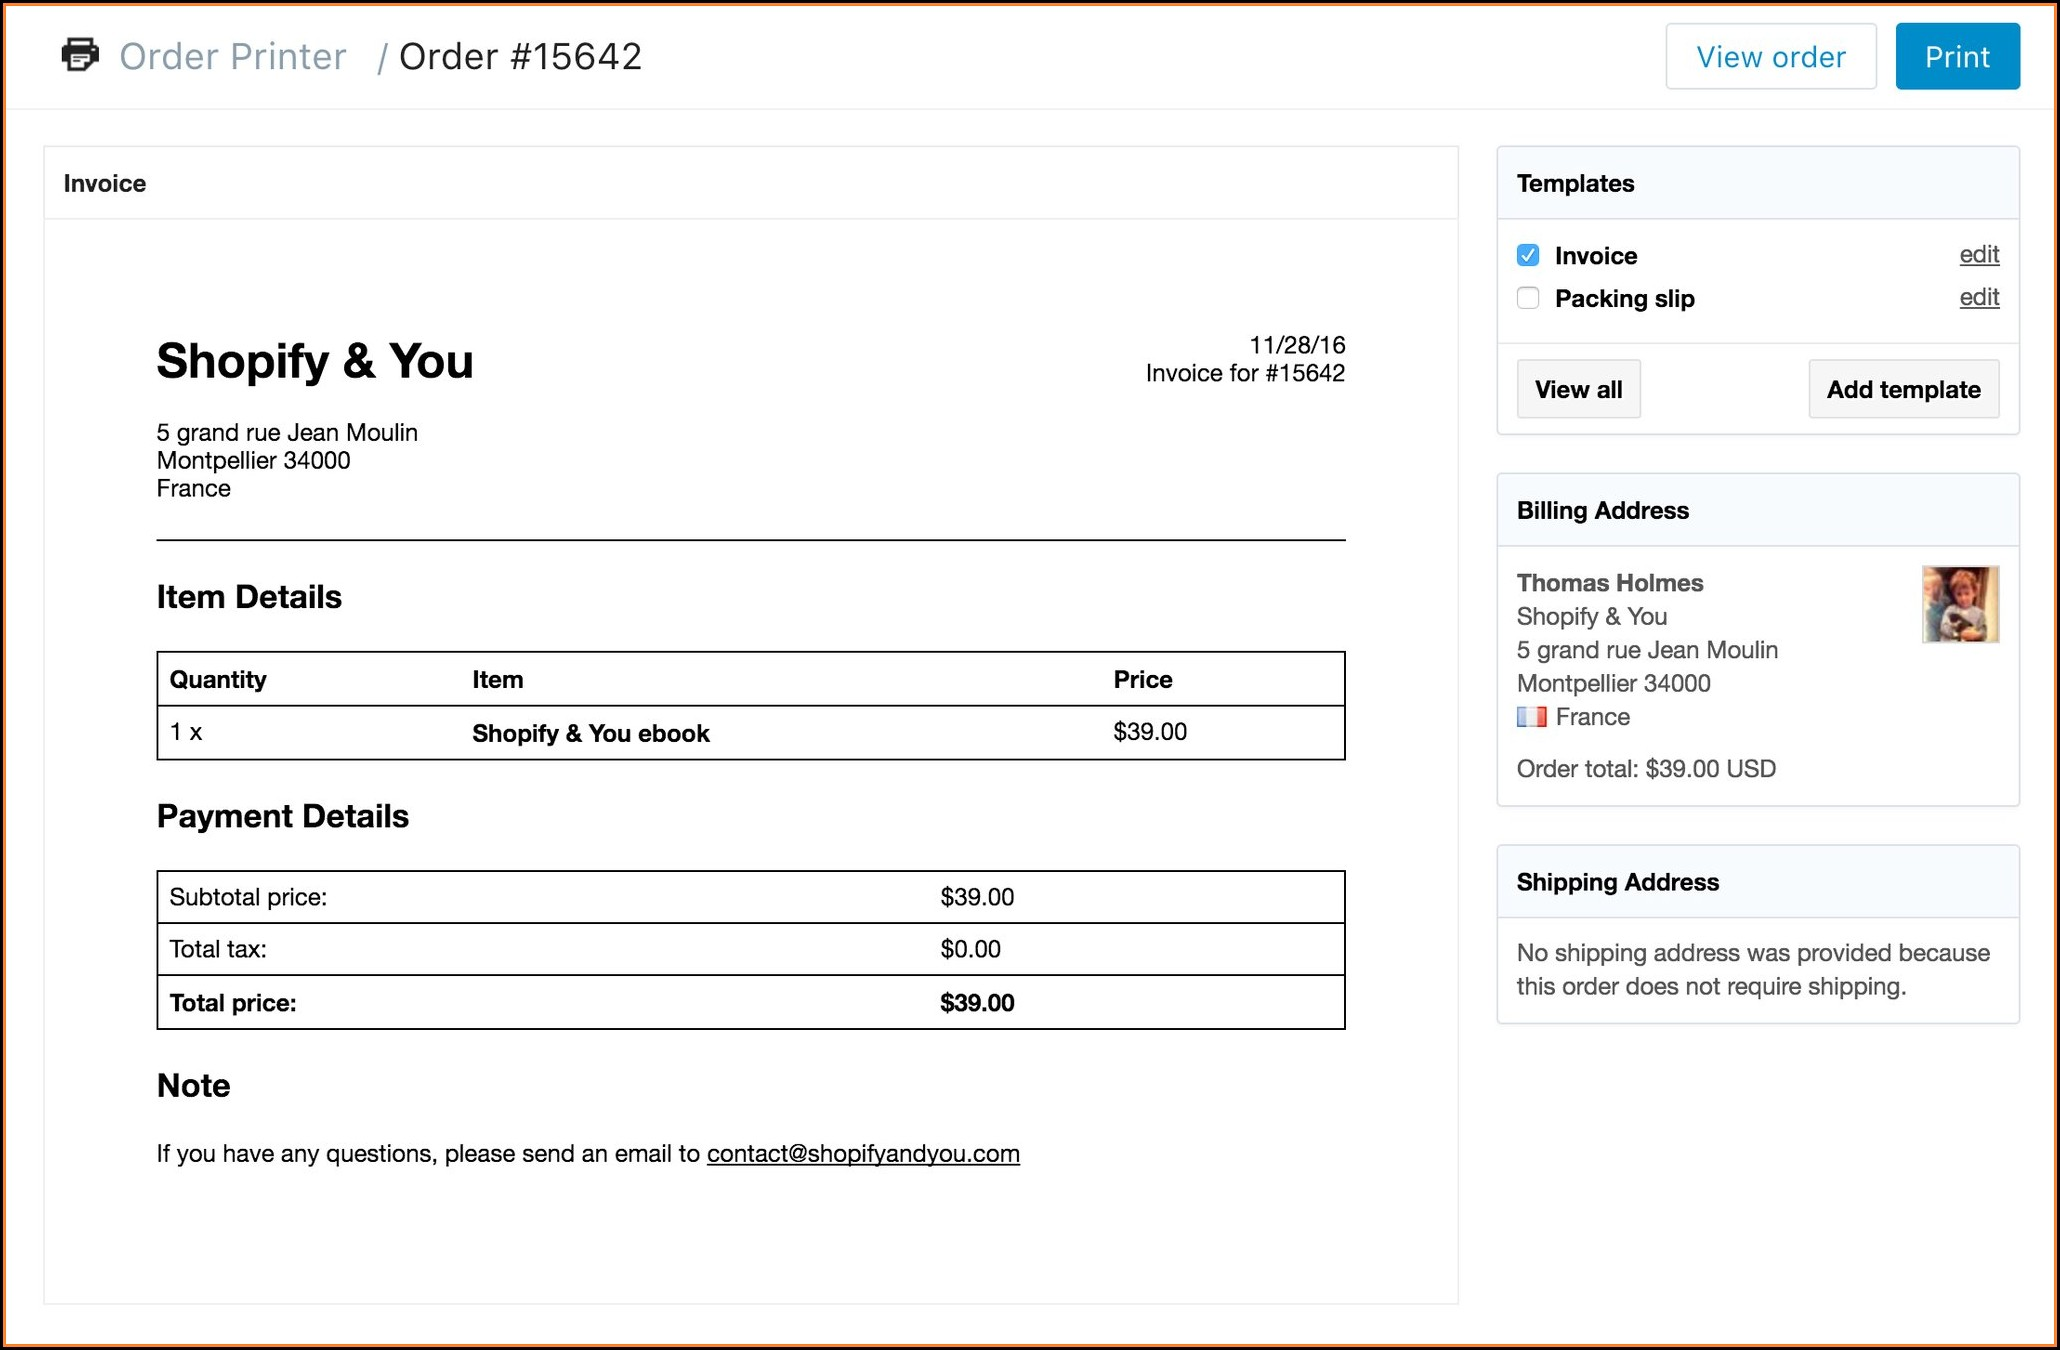 Filemaker Invoice Layout